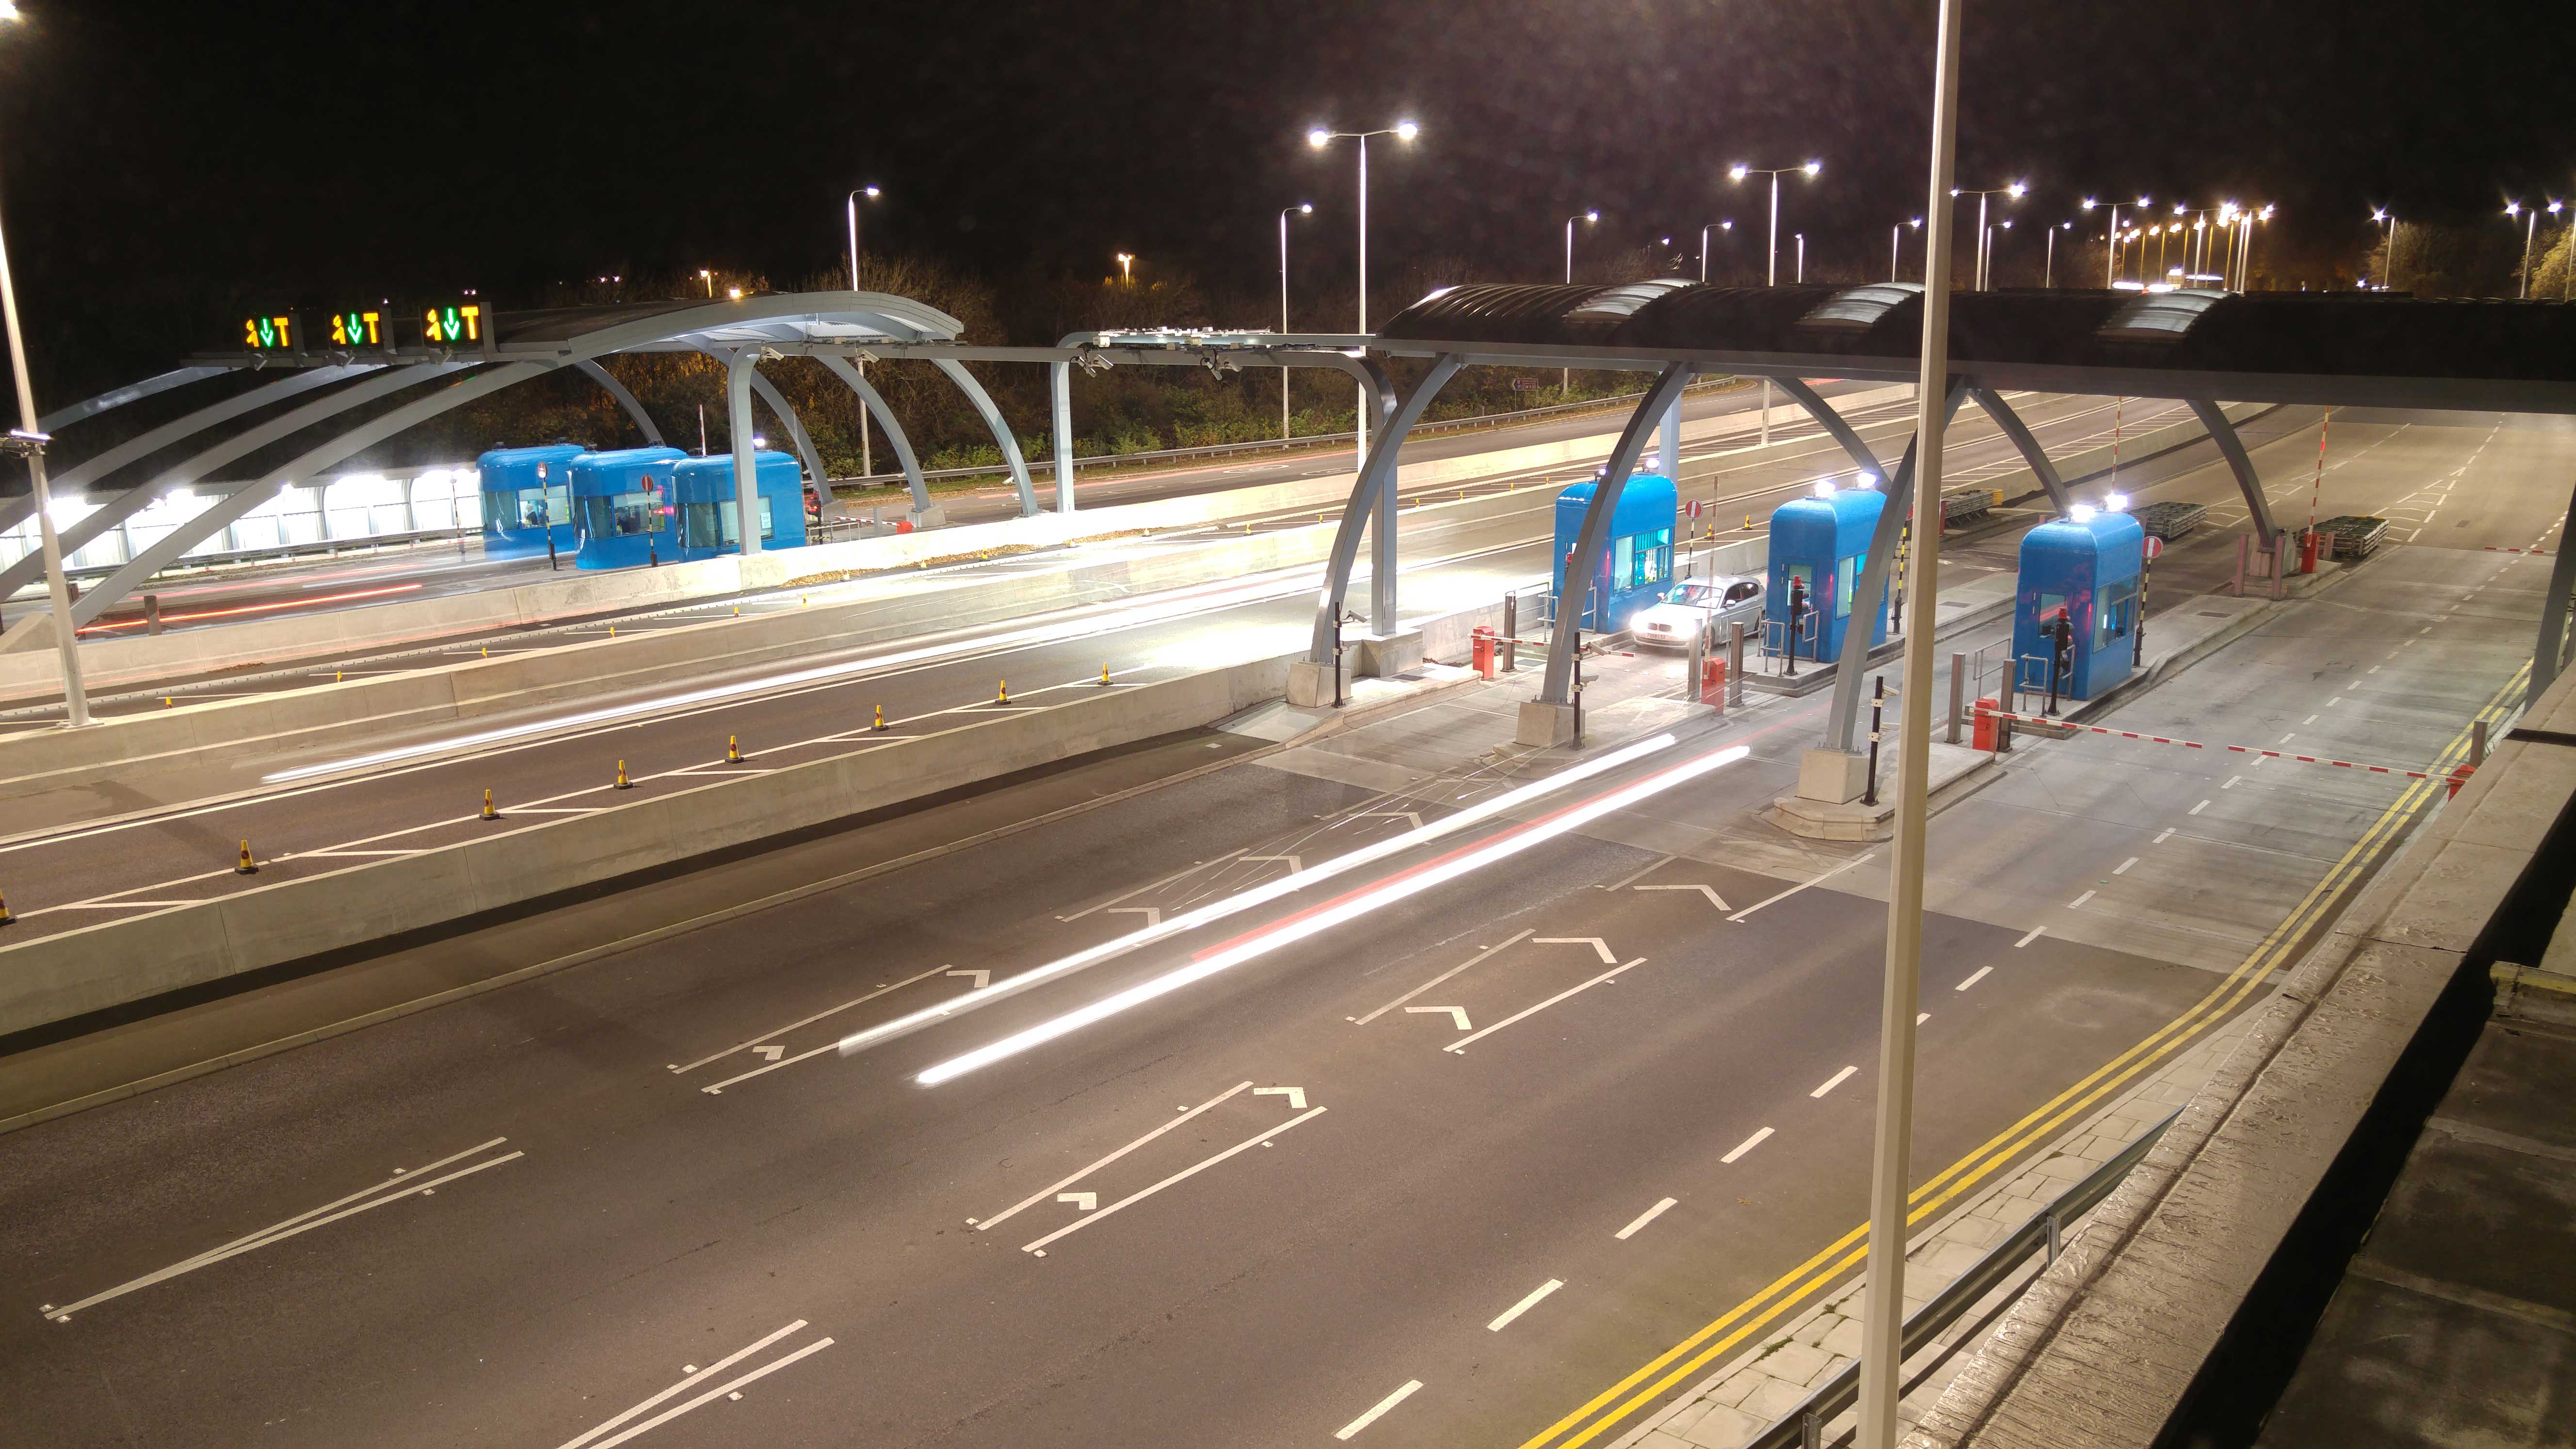 Update of the Humber bridge tolling system including the standard system and the free flow one